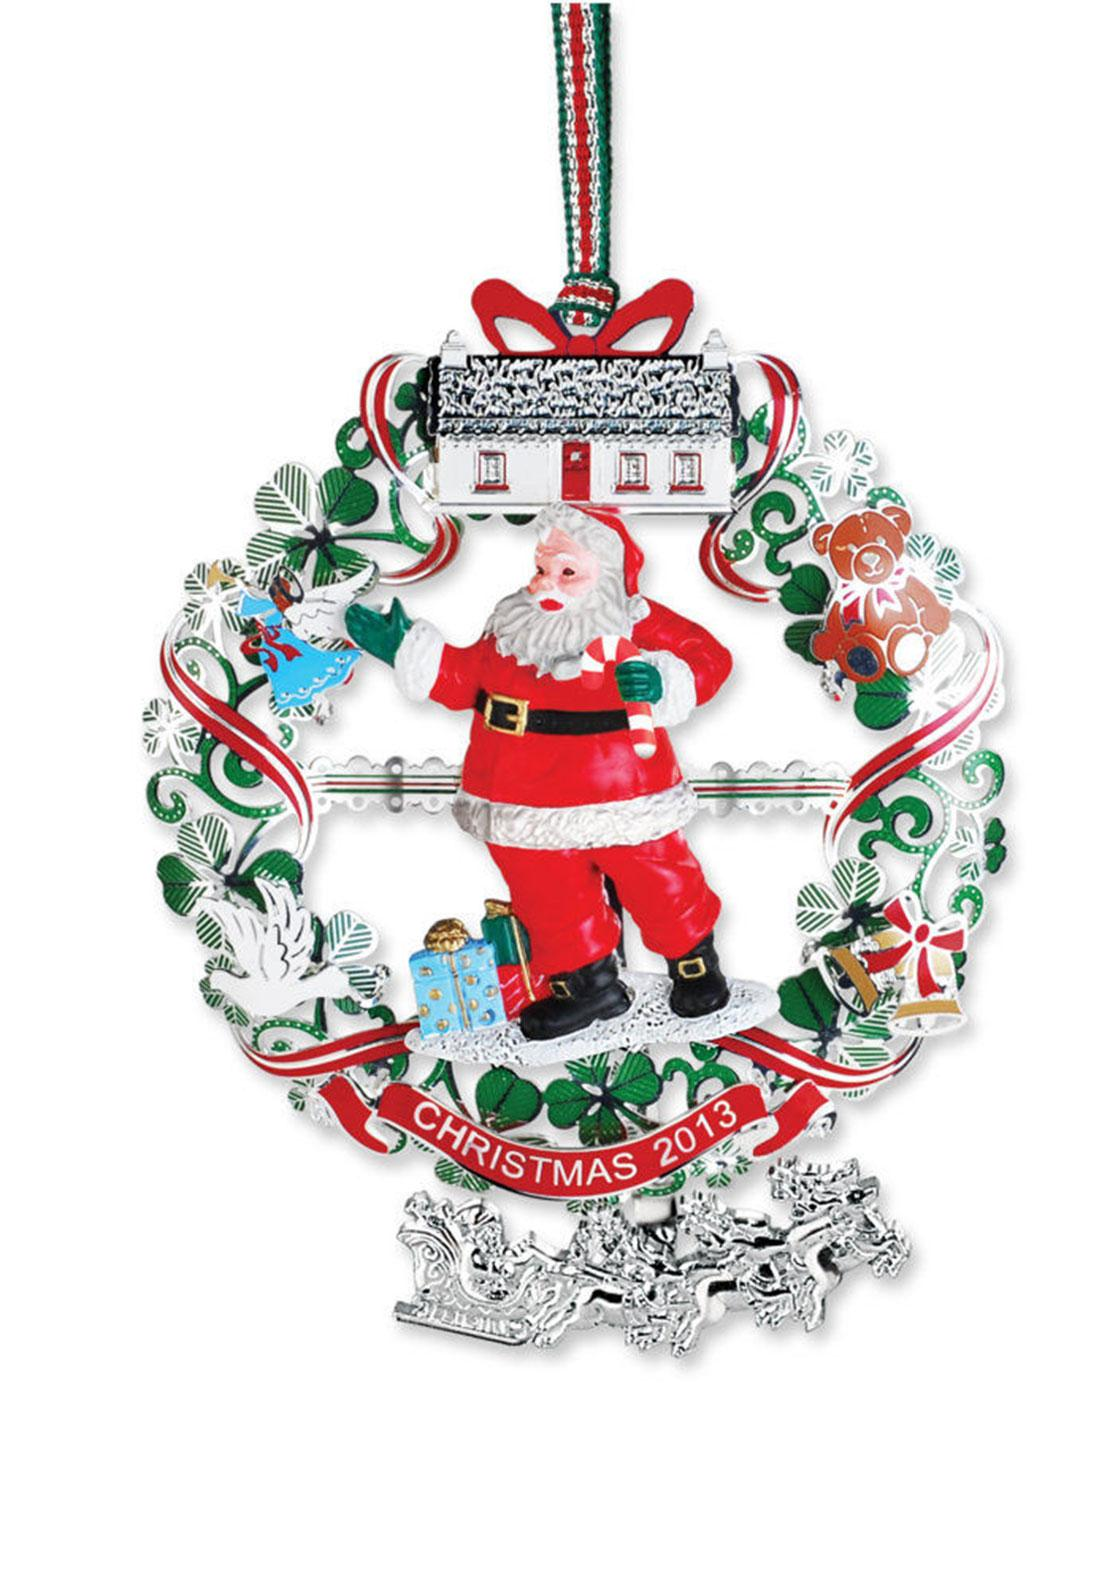 Newbridge A Celtic Christmas Blessing, 2013 Collectible Decoration